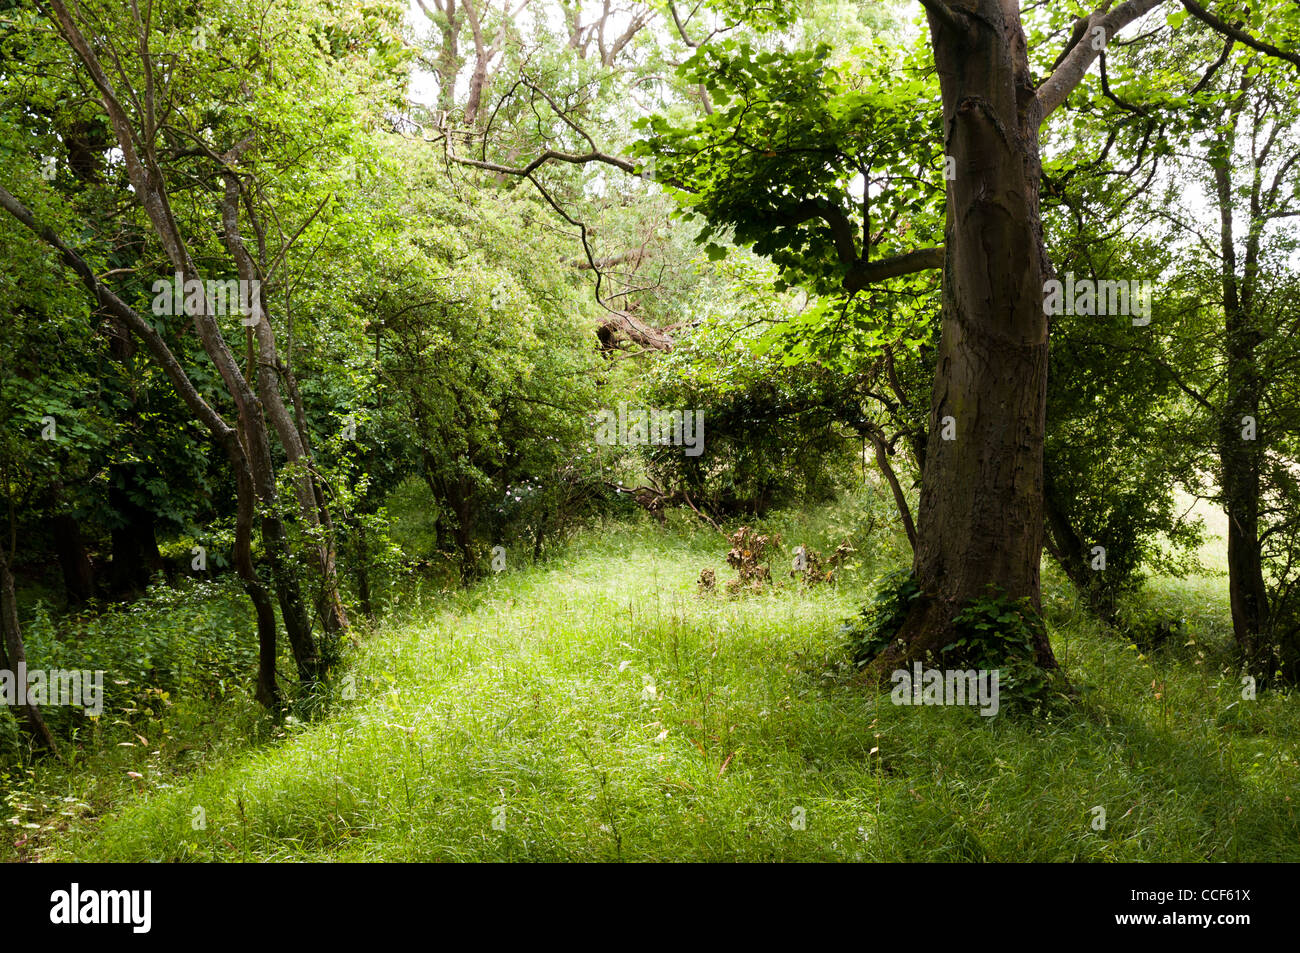 A small grassy knowl in Northamptonshire woodland - Stock Image